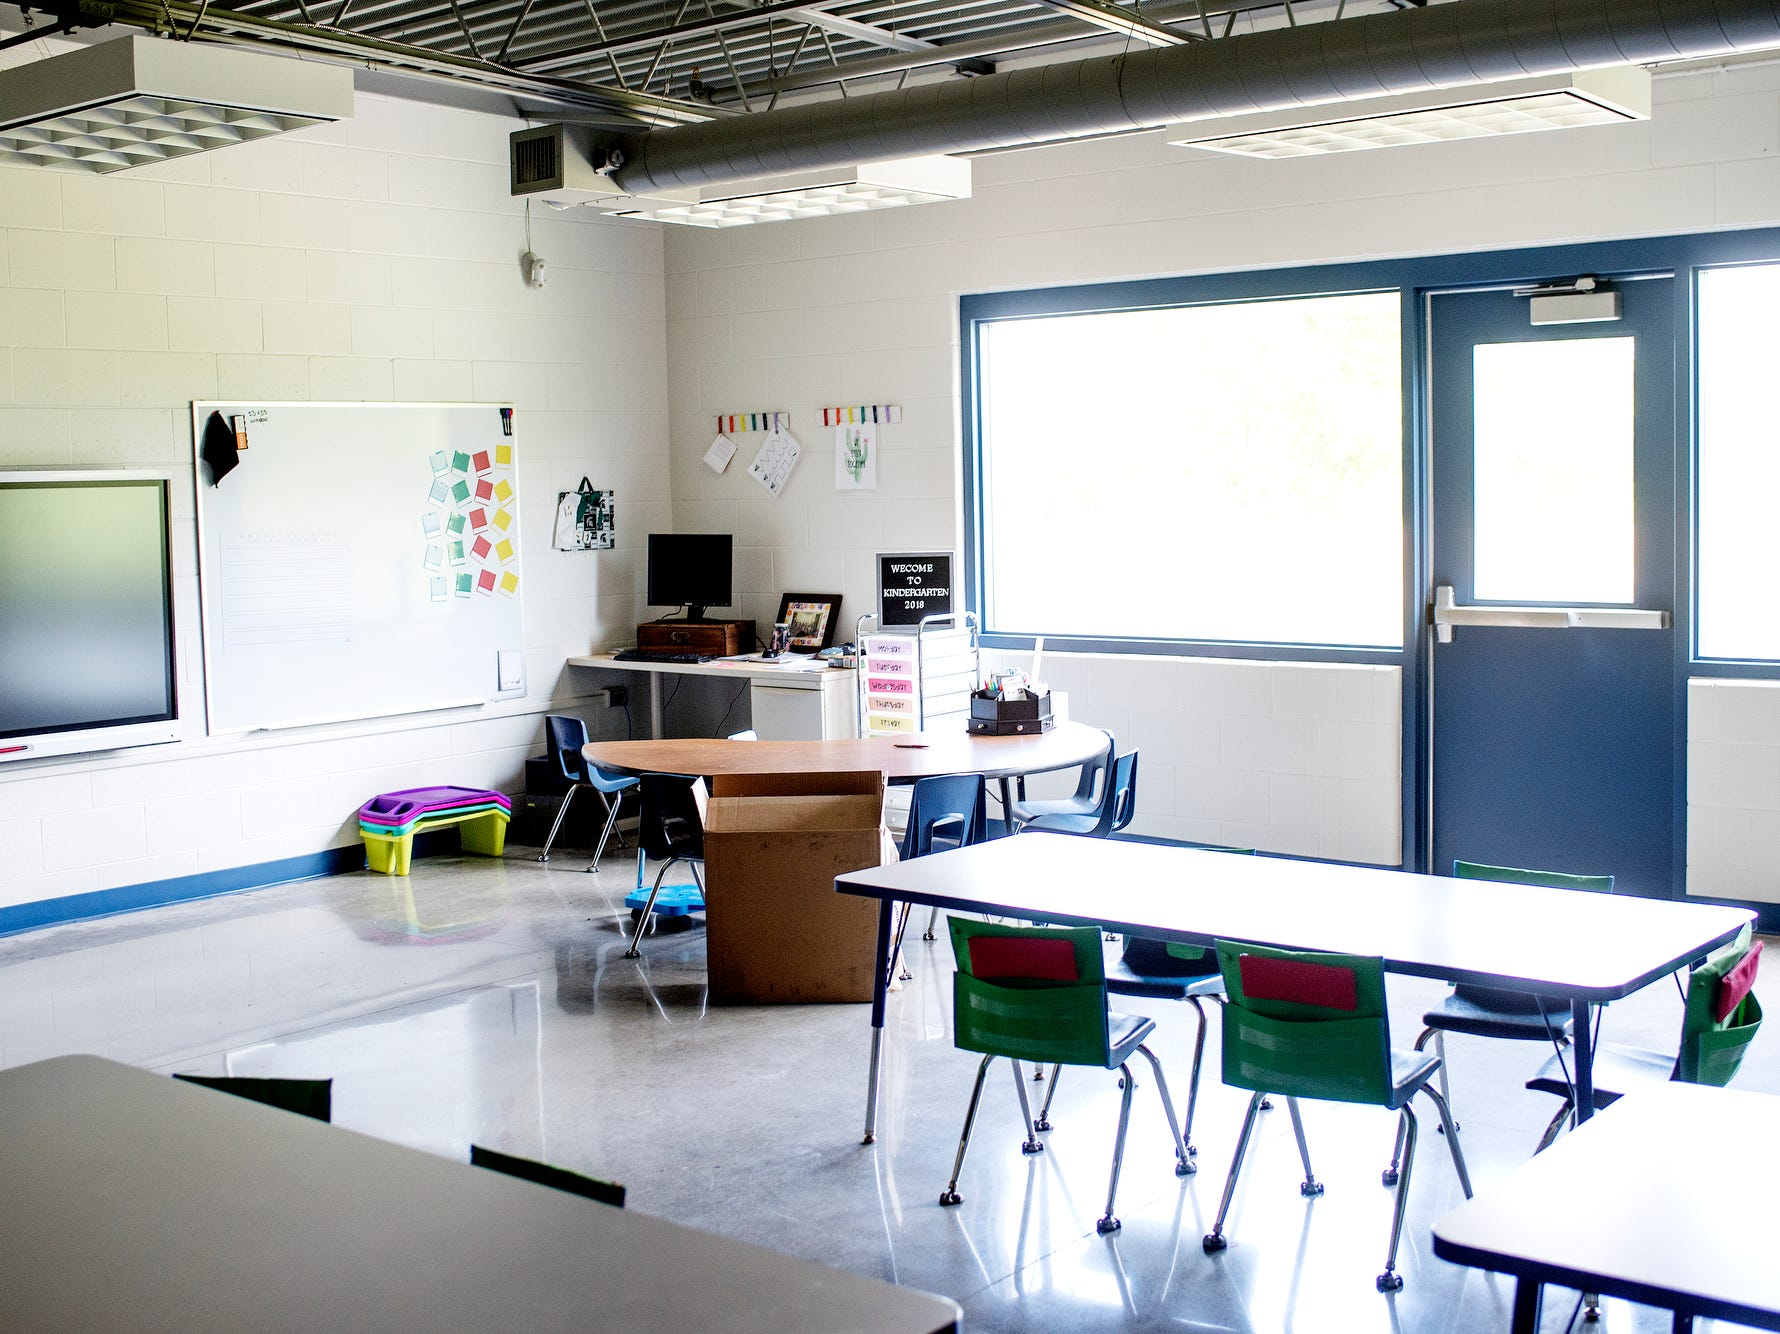 A classroom photographed on Wednesday, Aug. 1, 2018, at Cole Academy's East Lansing campus. The school, Cole Academy's second campus, is opening this fall.